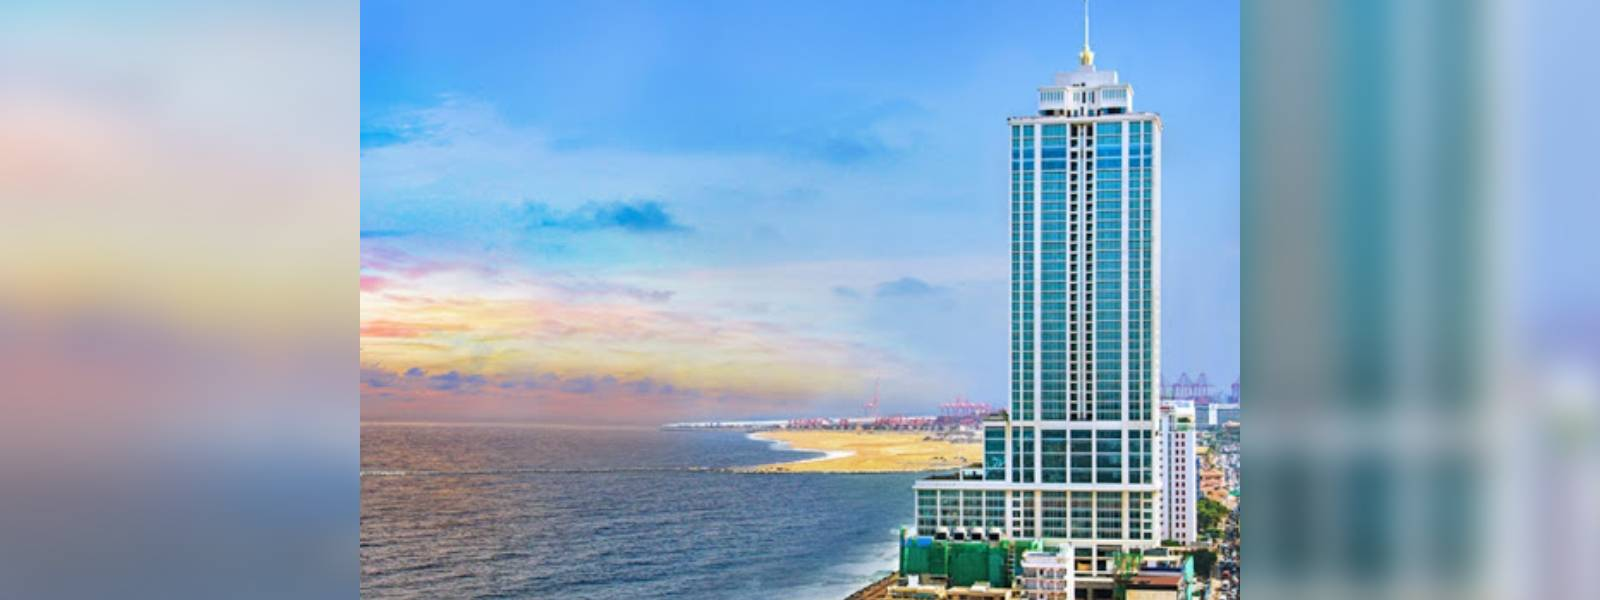 Grand Hyatt hotel project deadline extended until 2022